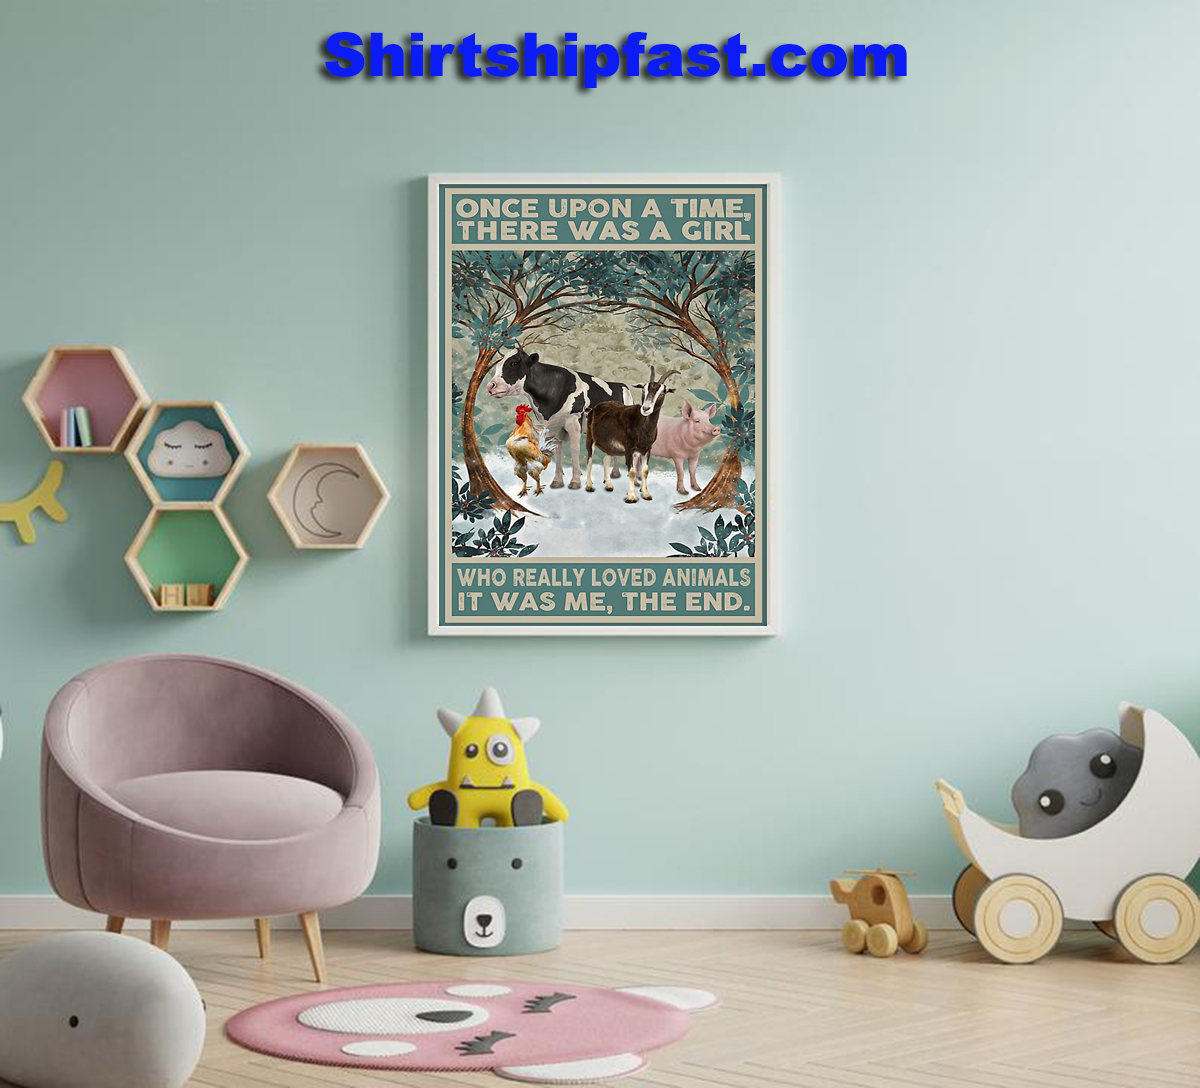 Chicken Pig Once upon a time there was a girl who really loved animals poster